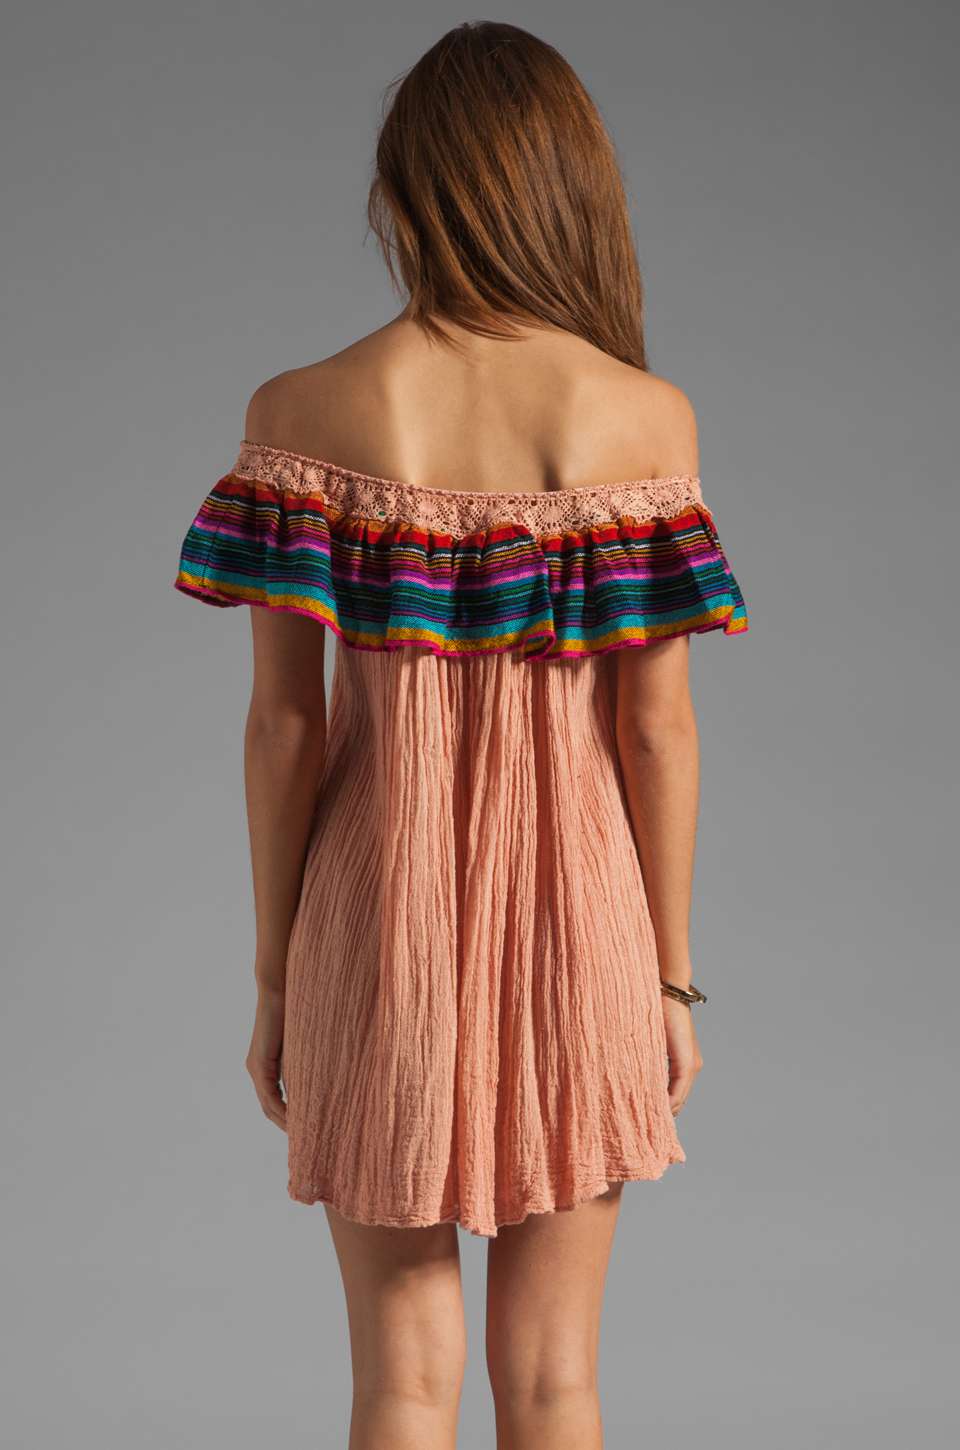 Jen's Pirate Booty T&B Senorita Dress in Clay/Colorful Stripe